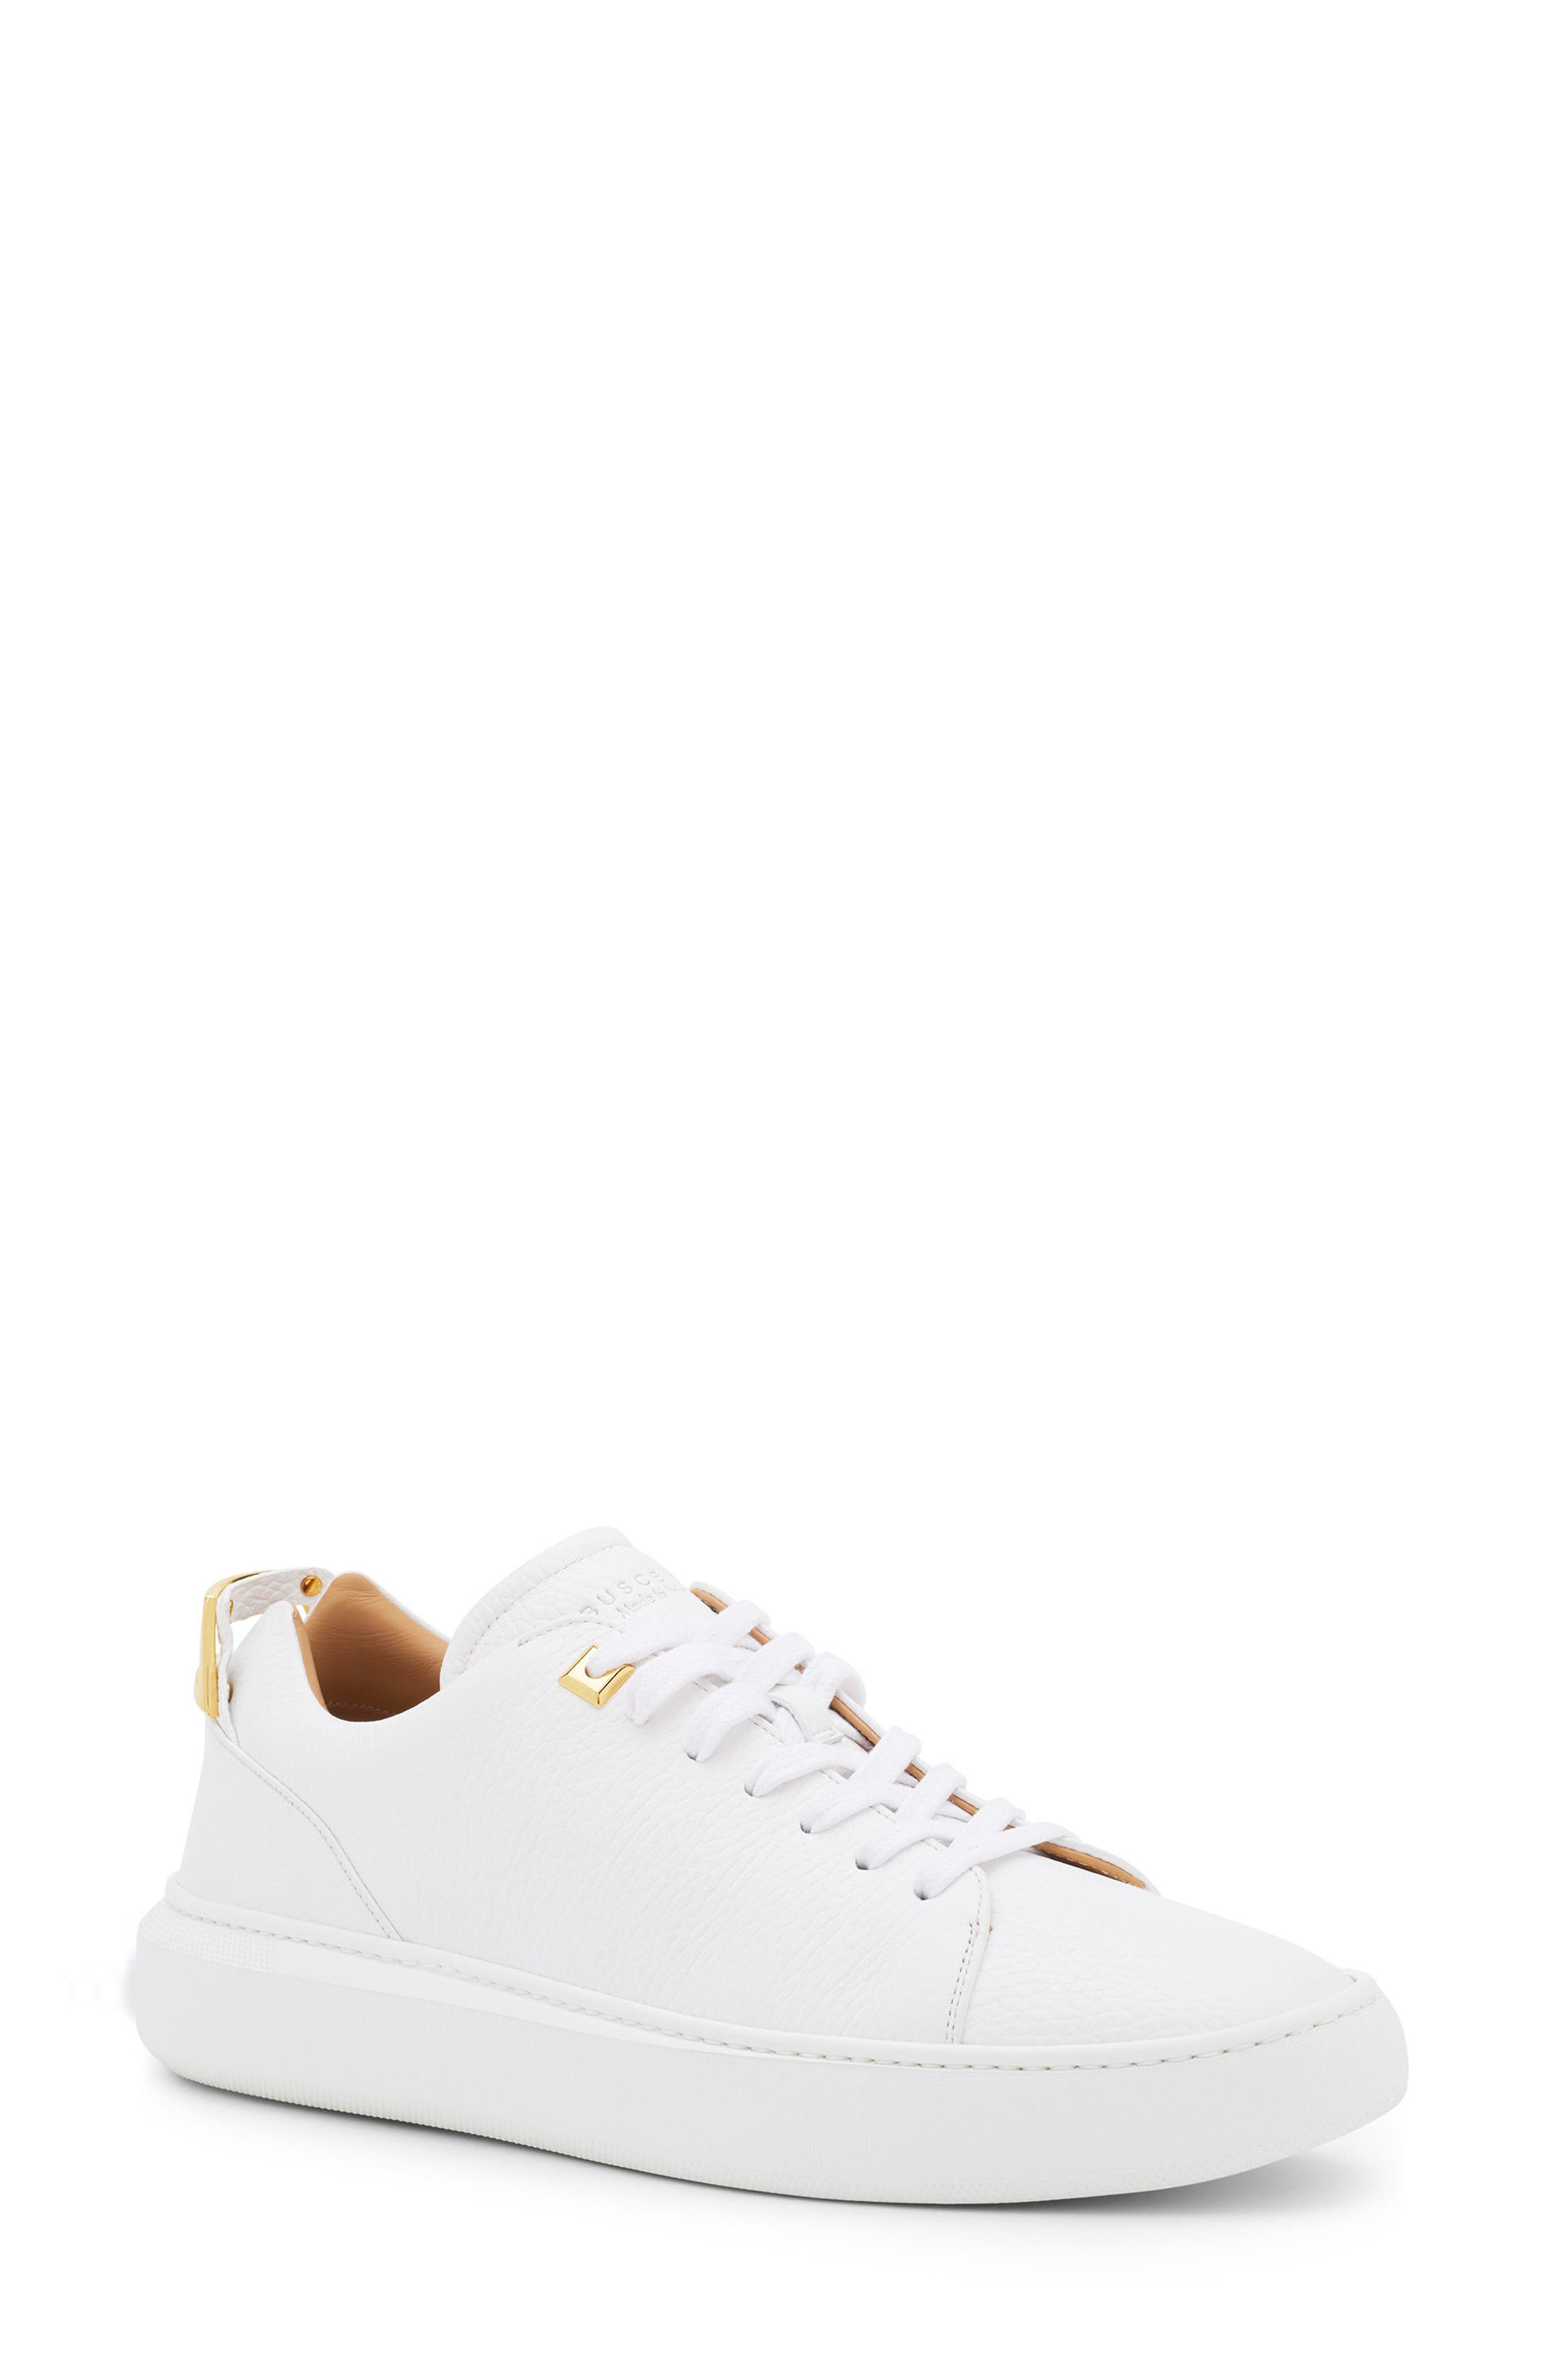 Alternate Image 1 Selected - Buscemi Uno Low Top Sneaker (Women)